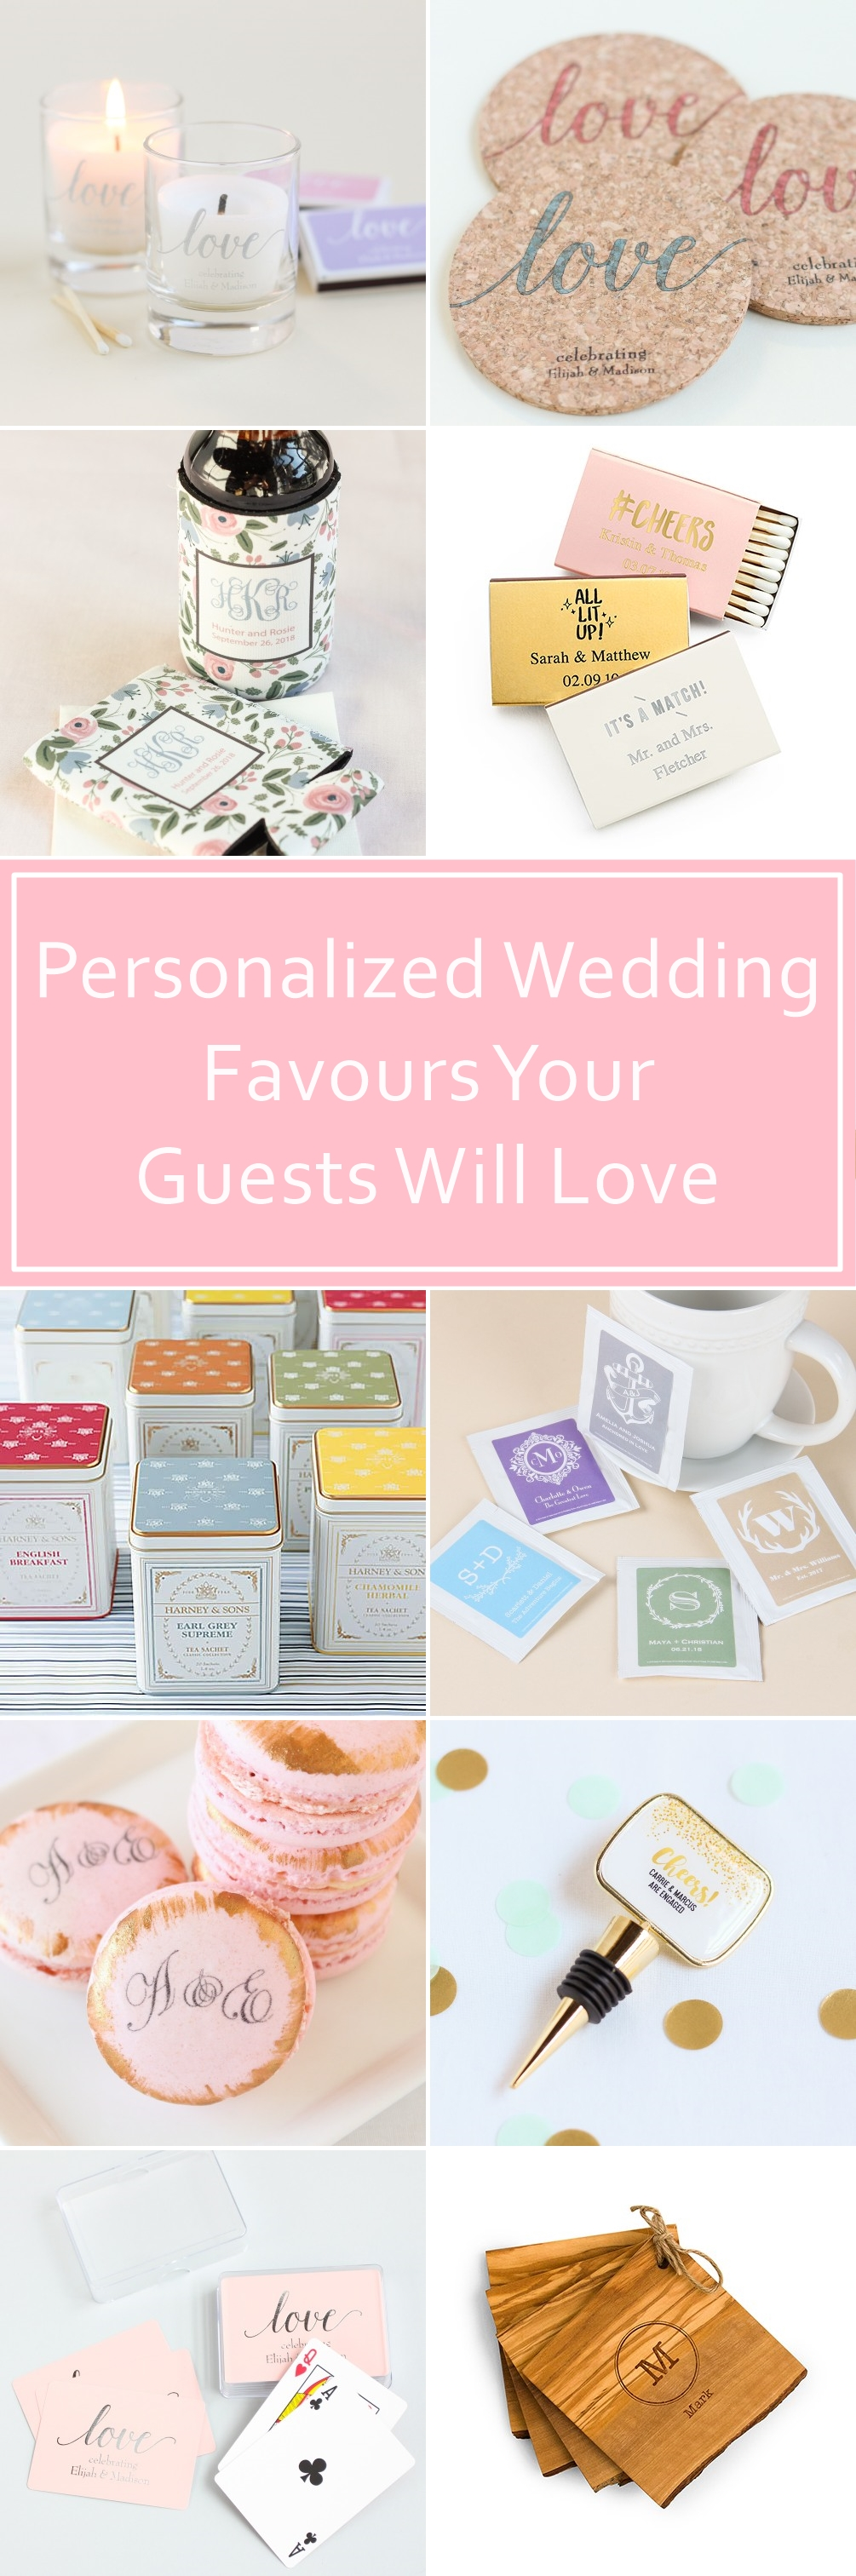 Awesome Personalized Wedding Favors Your Guests Will Love ...